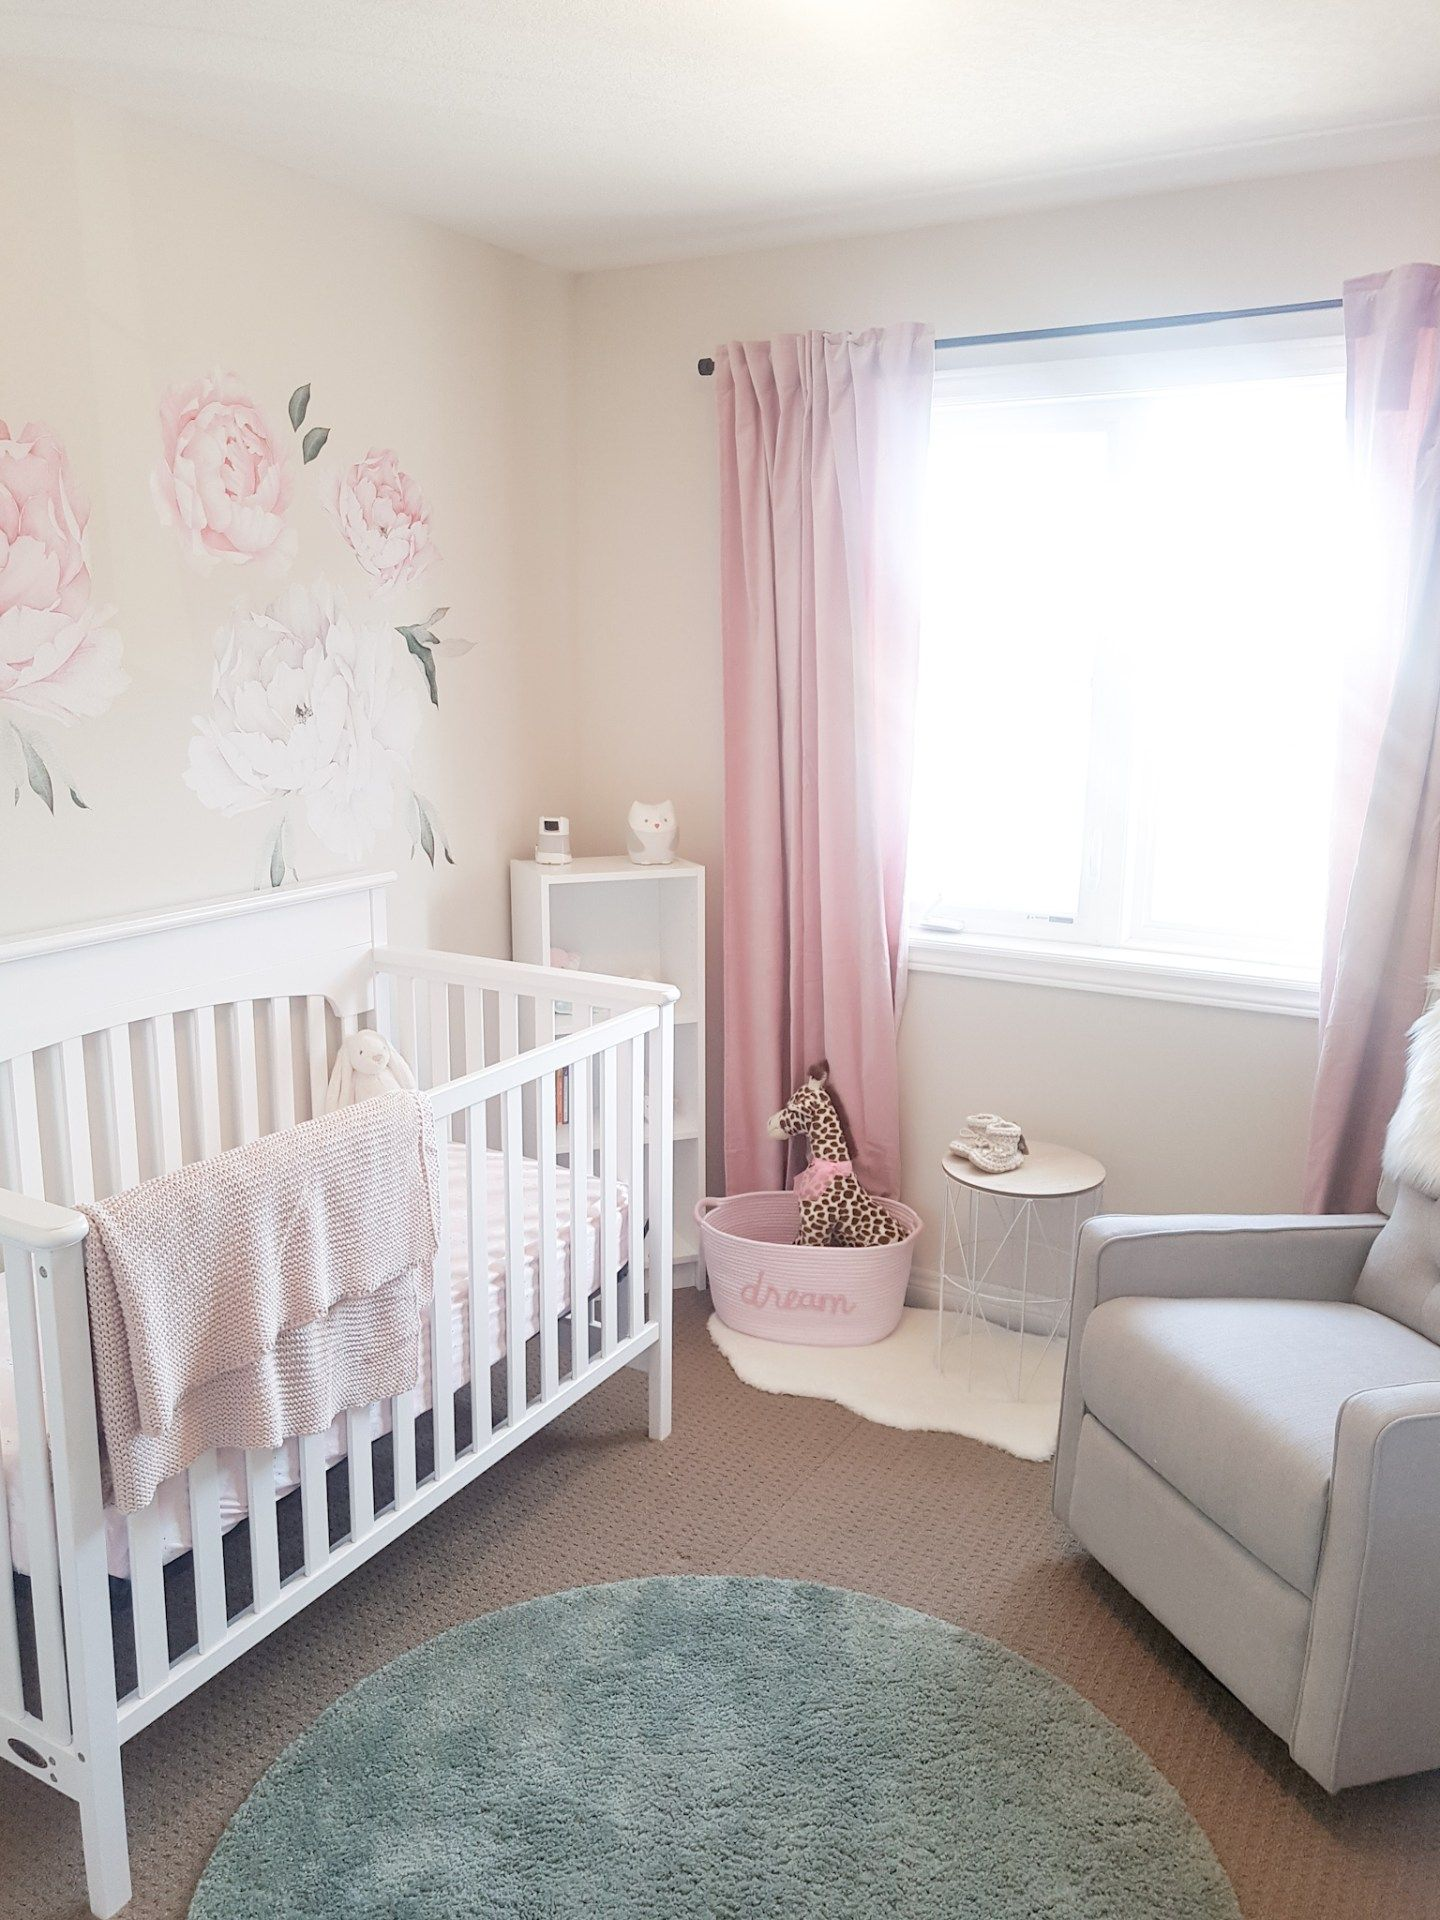 Baby Girl Nursery Room Tour + Nursery Essentials - CANDICE CAMERA In 2020 | Baby Girl Nursery Room, Nursery Essentials, Girl Nursery Room